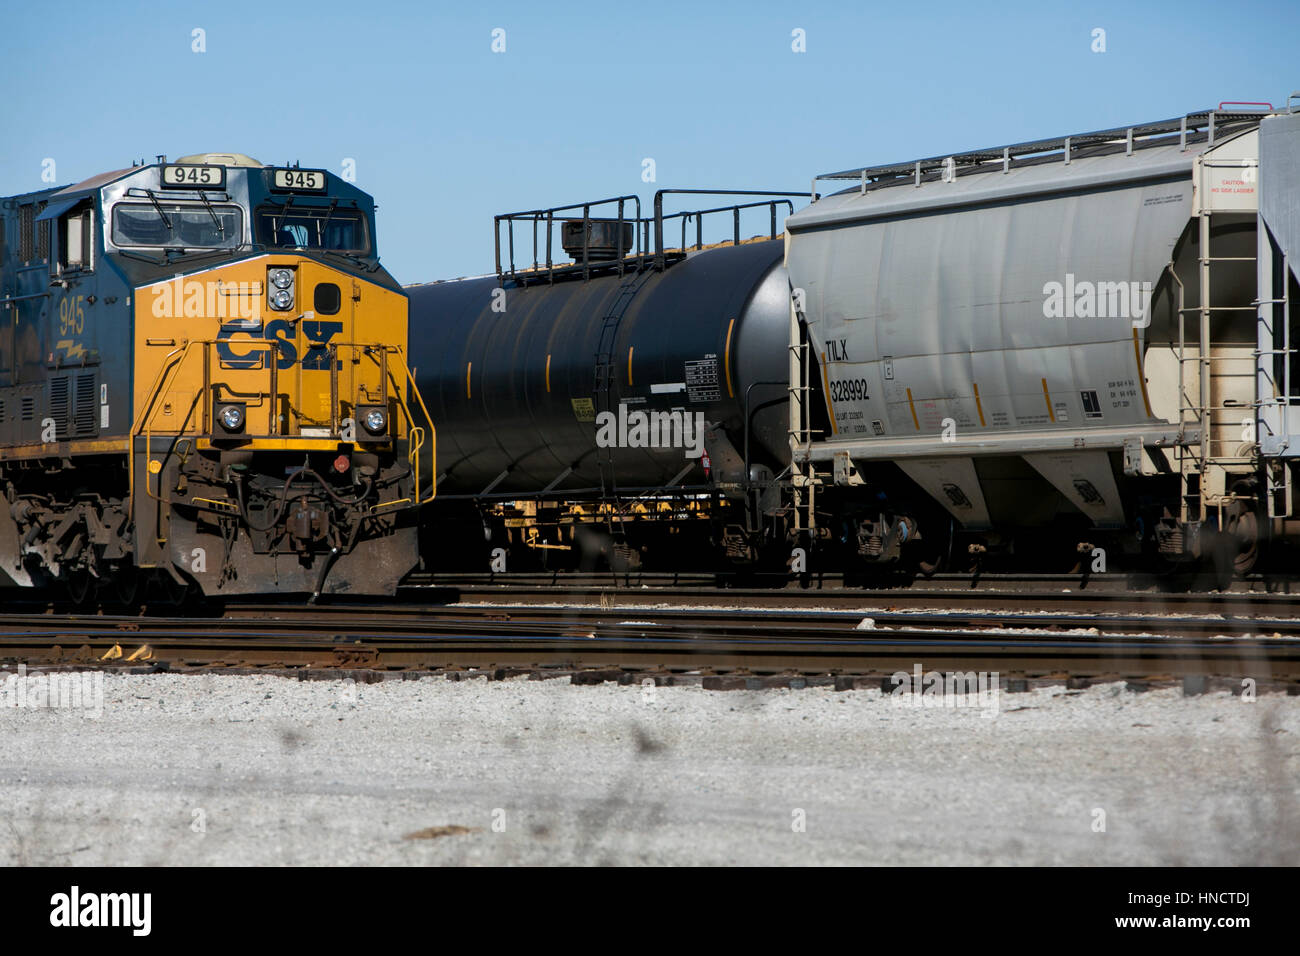 CSX Locomotives and train cars on a railroad siding in Nashville, Tennessee on February 4, 2017. - Stock Image